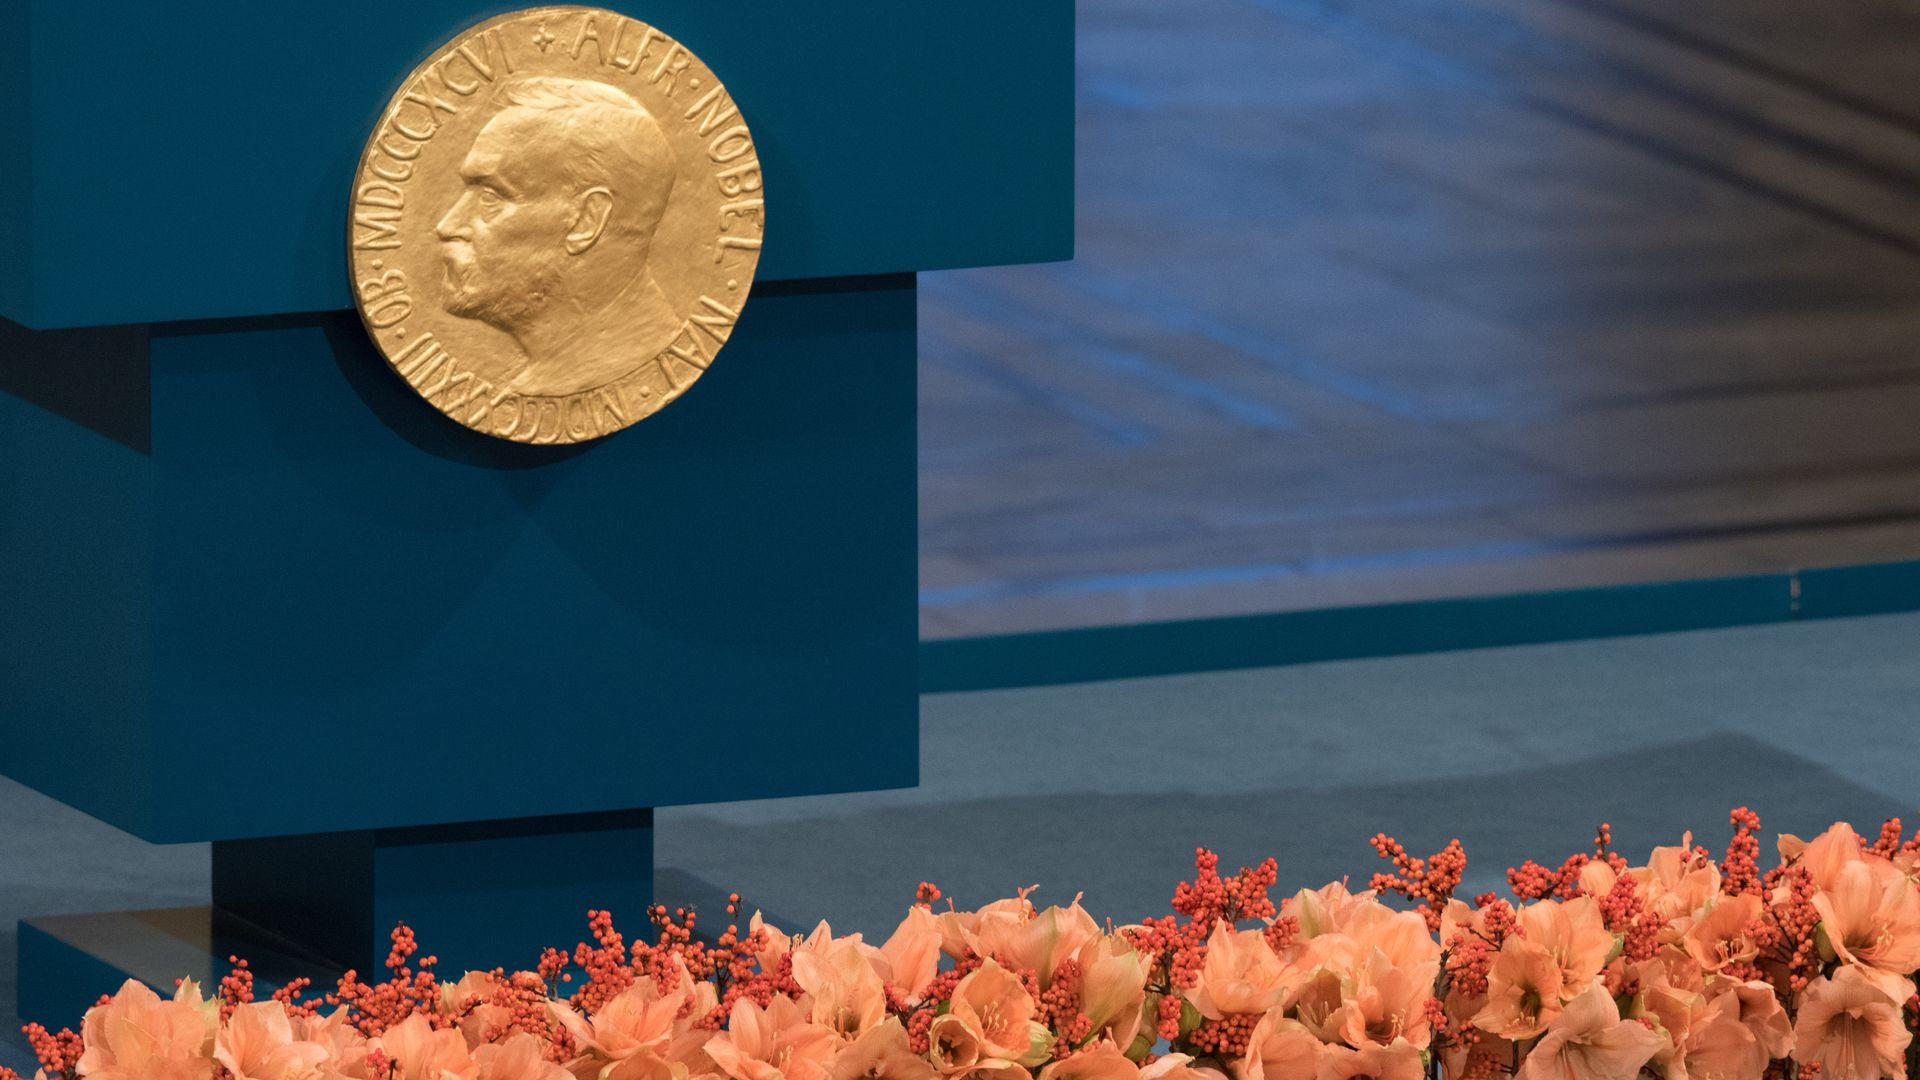 A plaque depicting Alfred Nobel adorns the lecturn prior to 2015 ceremony in Oslo, Norway.